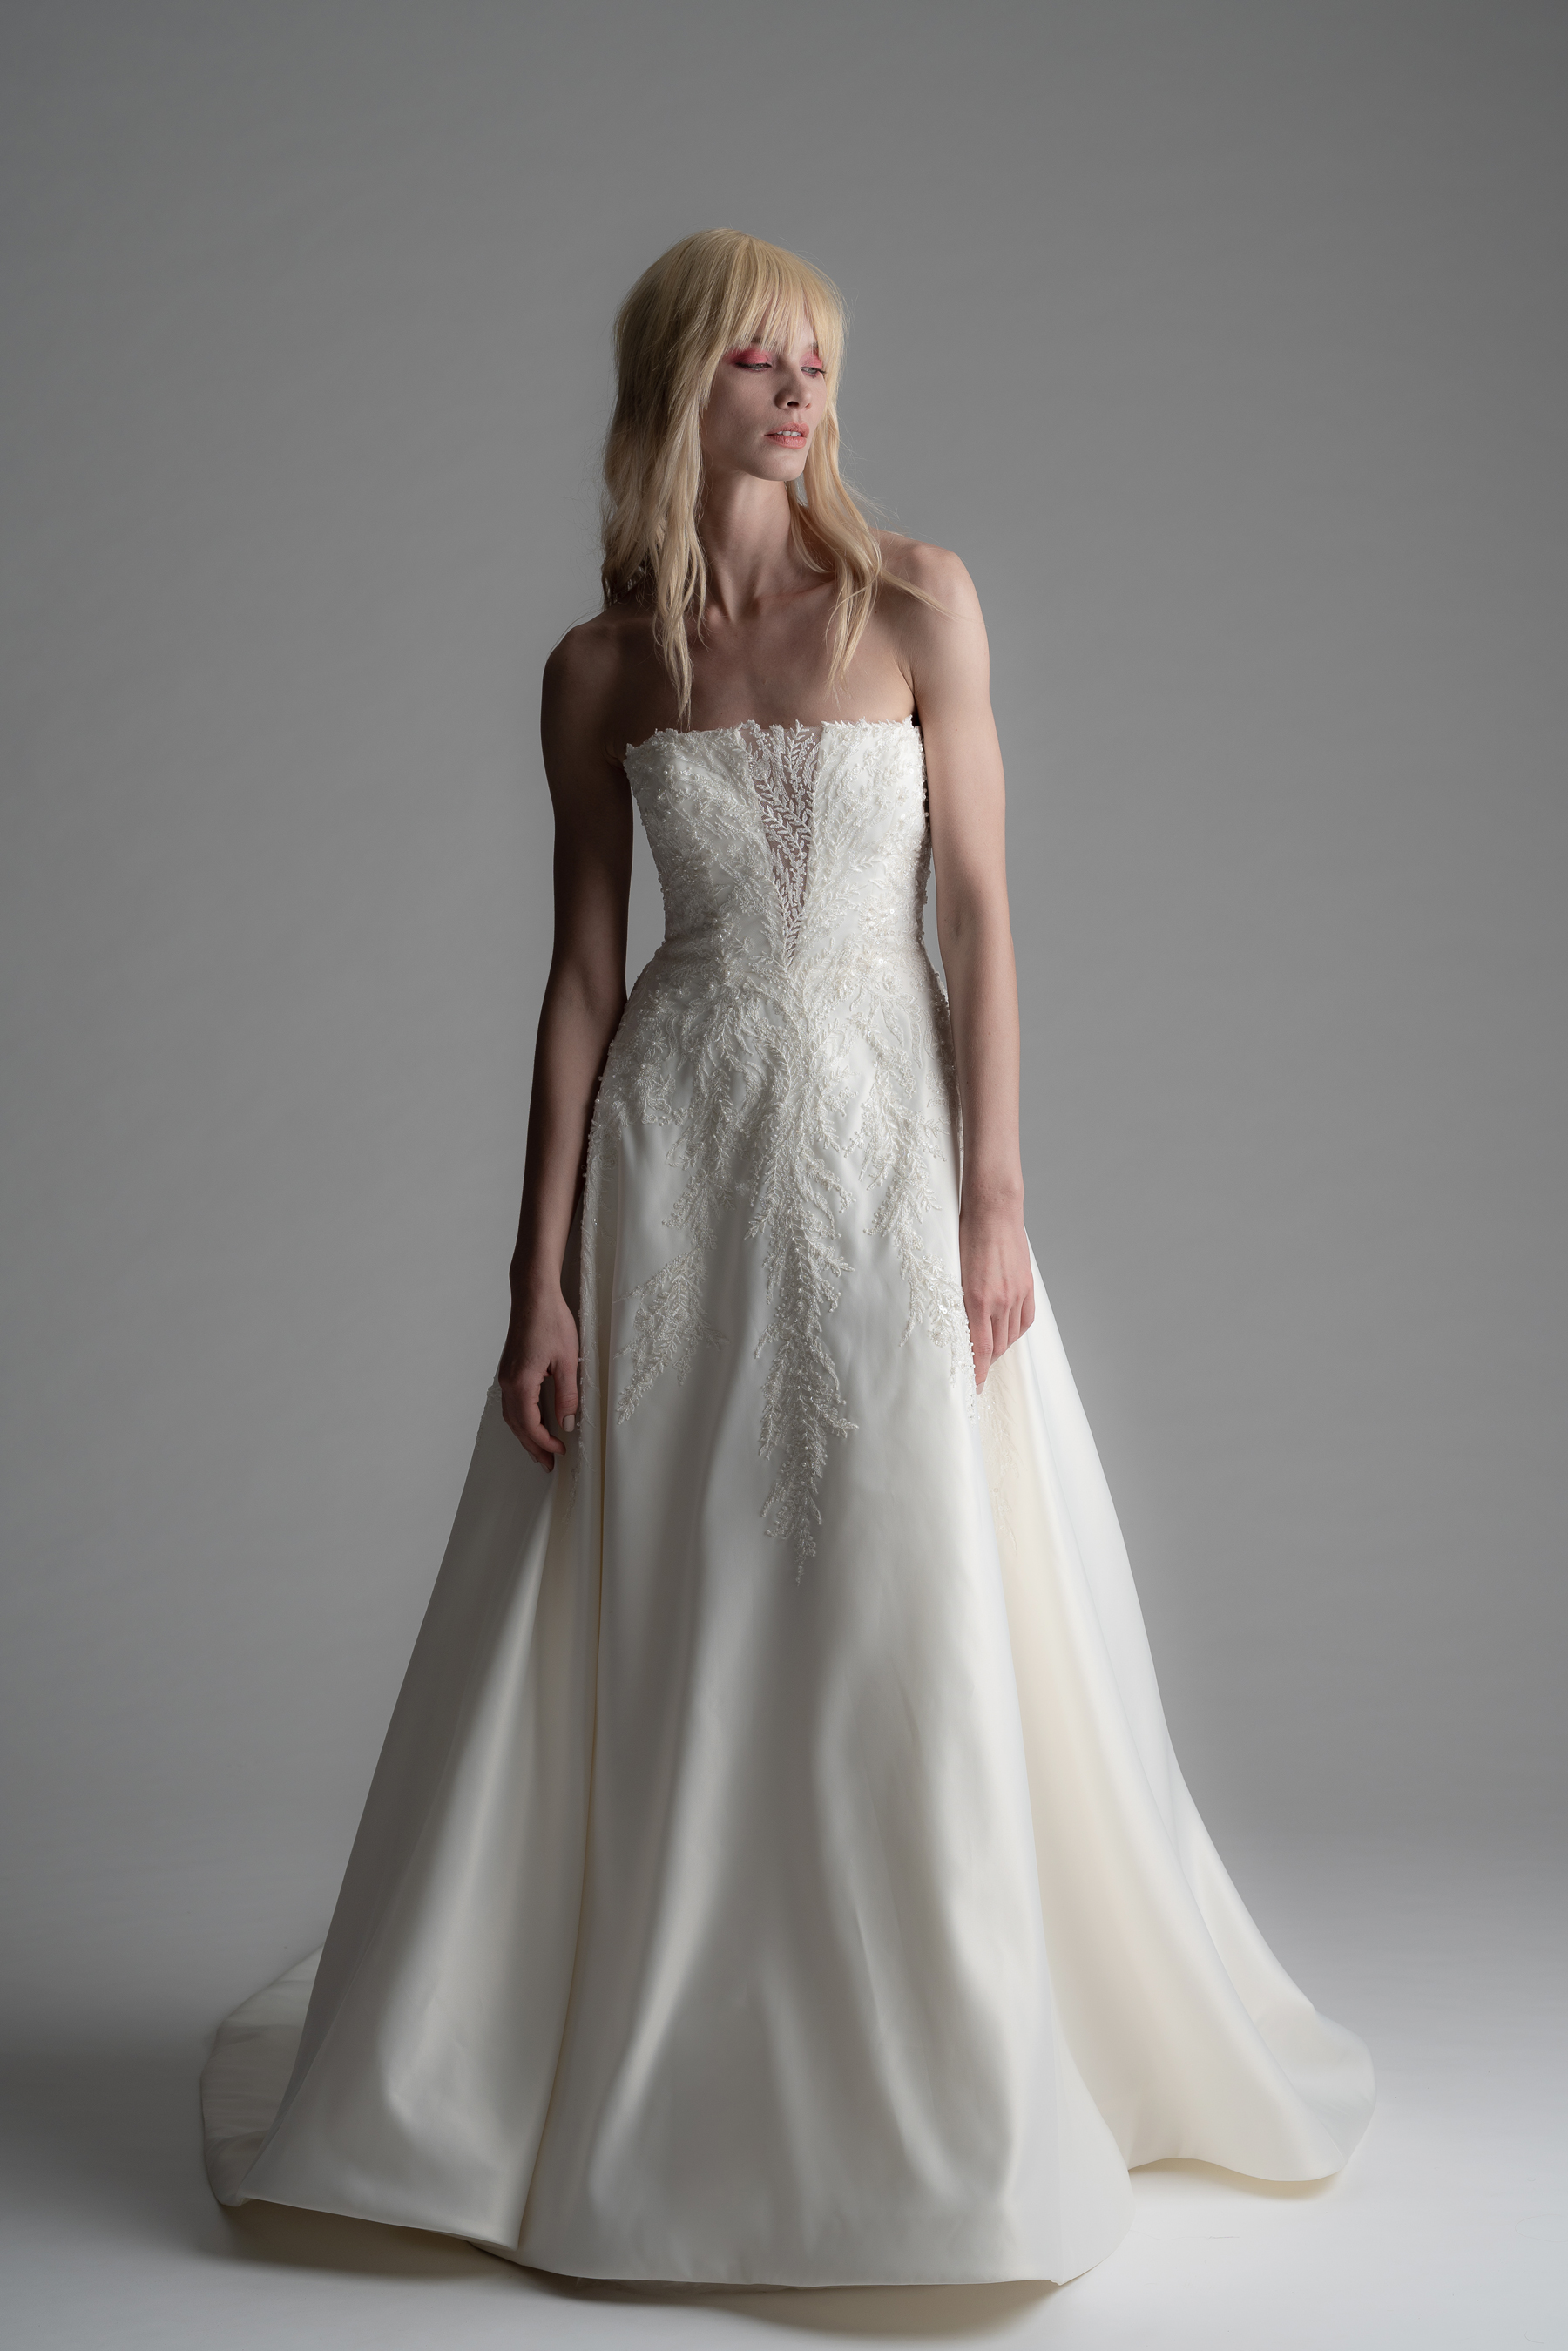 alyne rita vinieris fall 2019 strapless a-line gown with beaded lace bodice